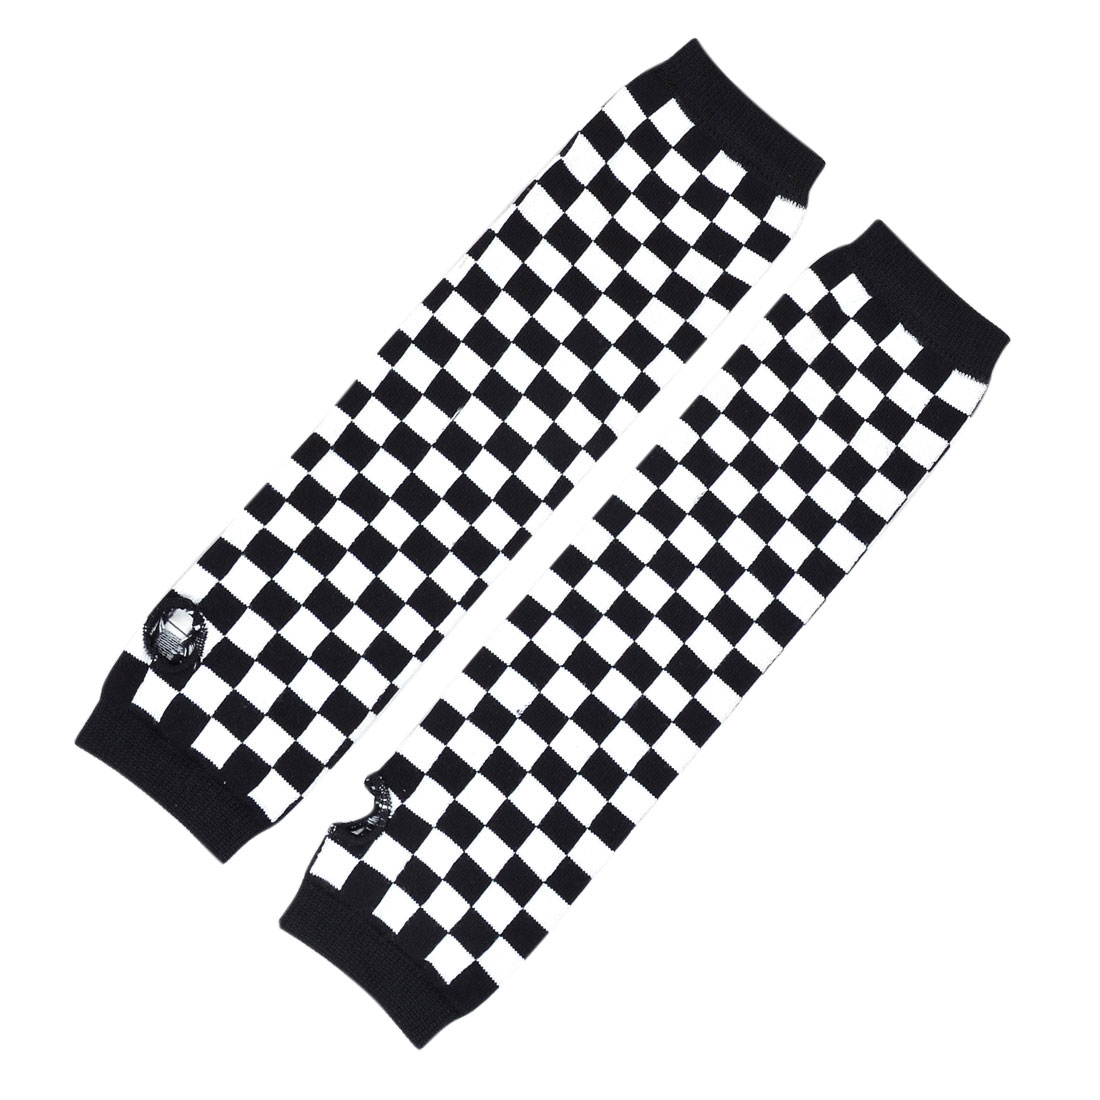 Pair Black White Plaids Print Acrylic Fingerless Arm Warmers Gloves for Women